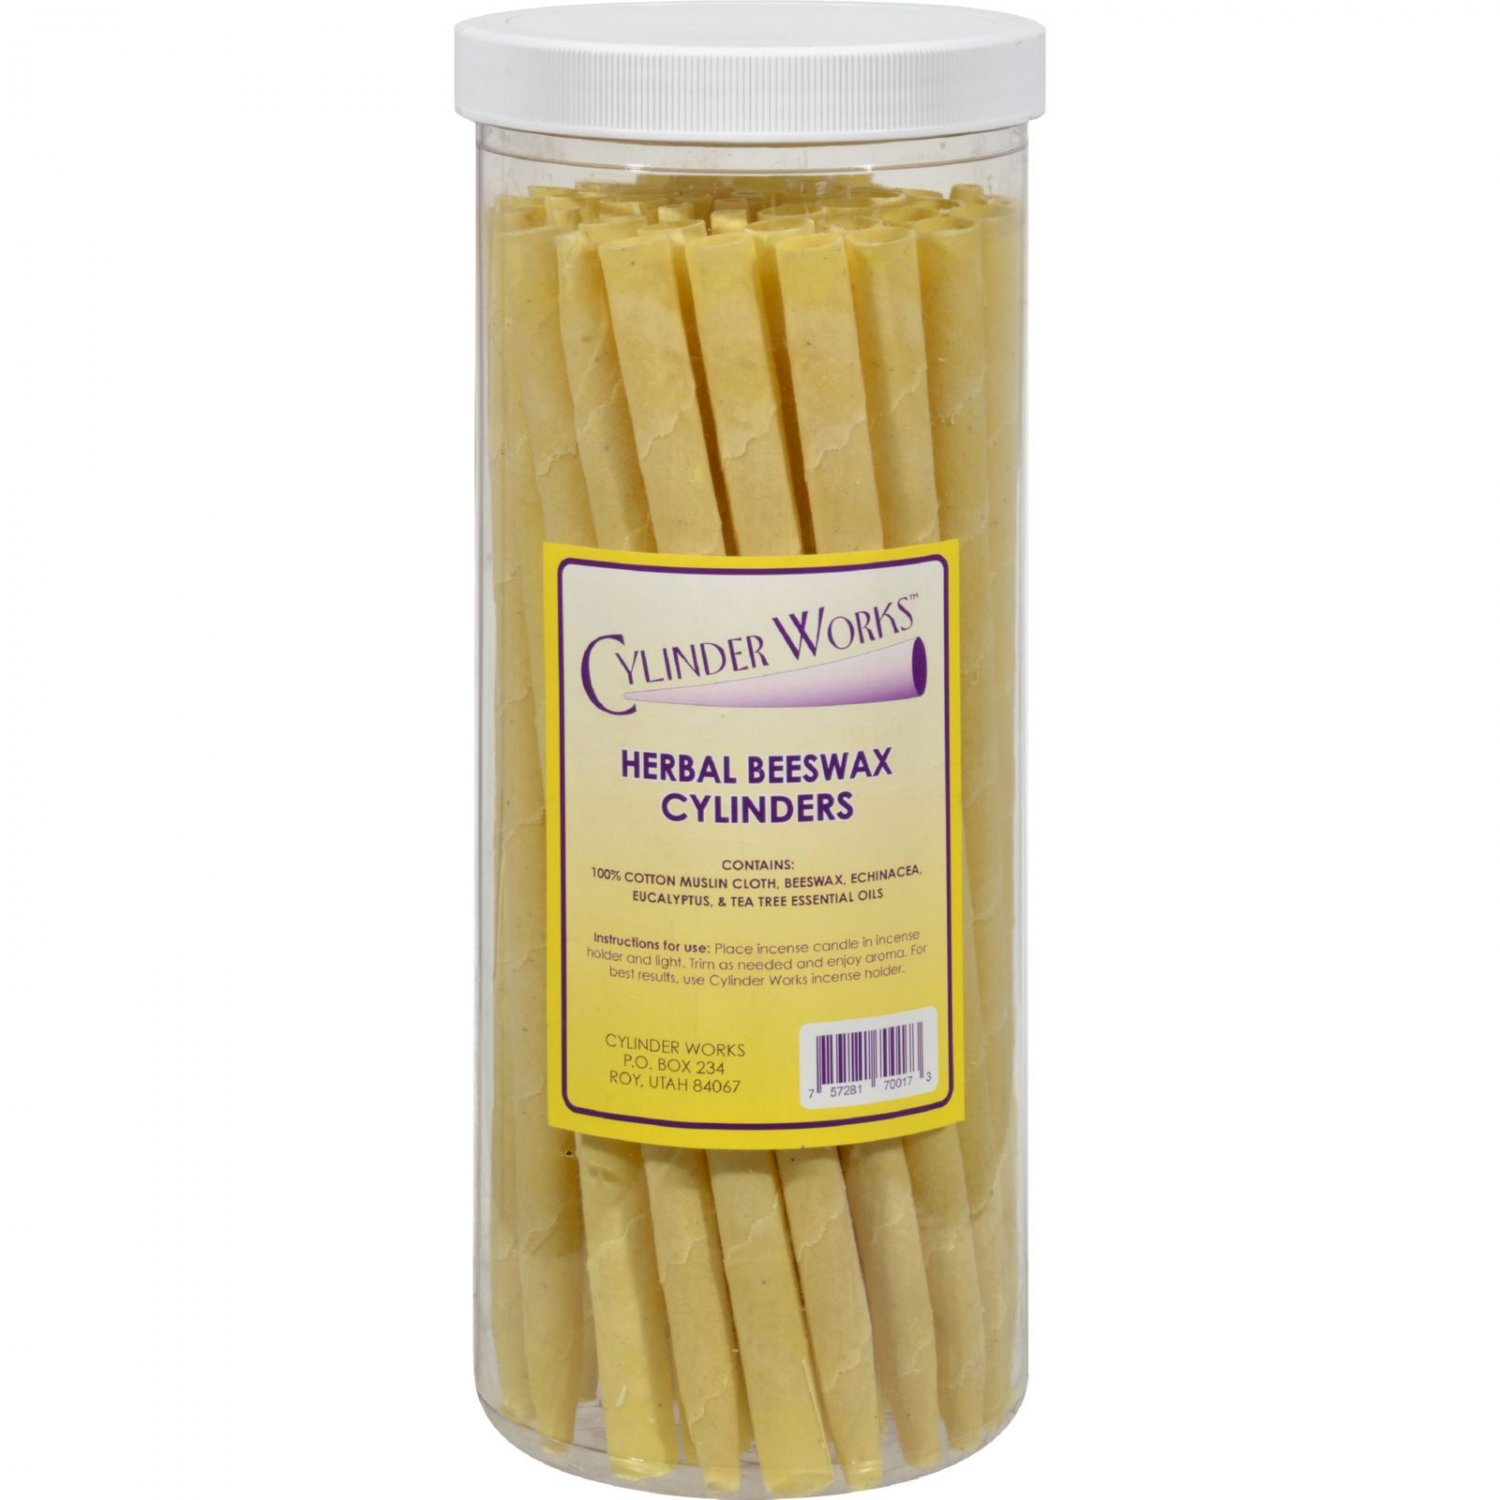 Cylinder Works Cylinders - Herbal Beeswax - 50 ct